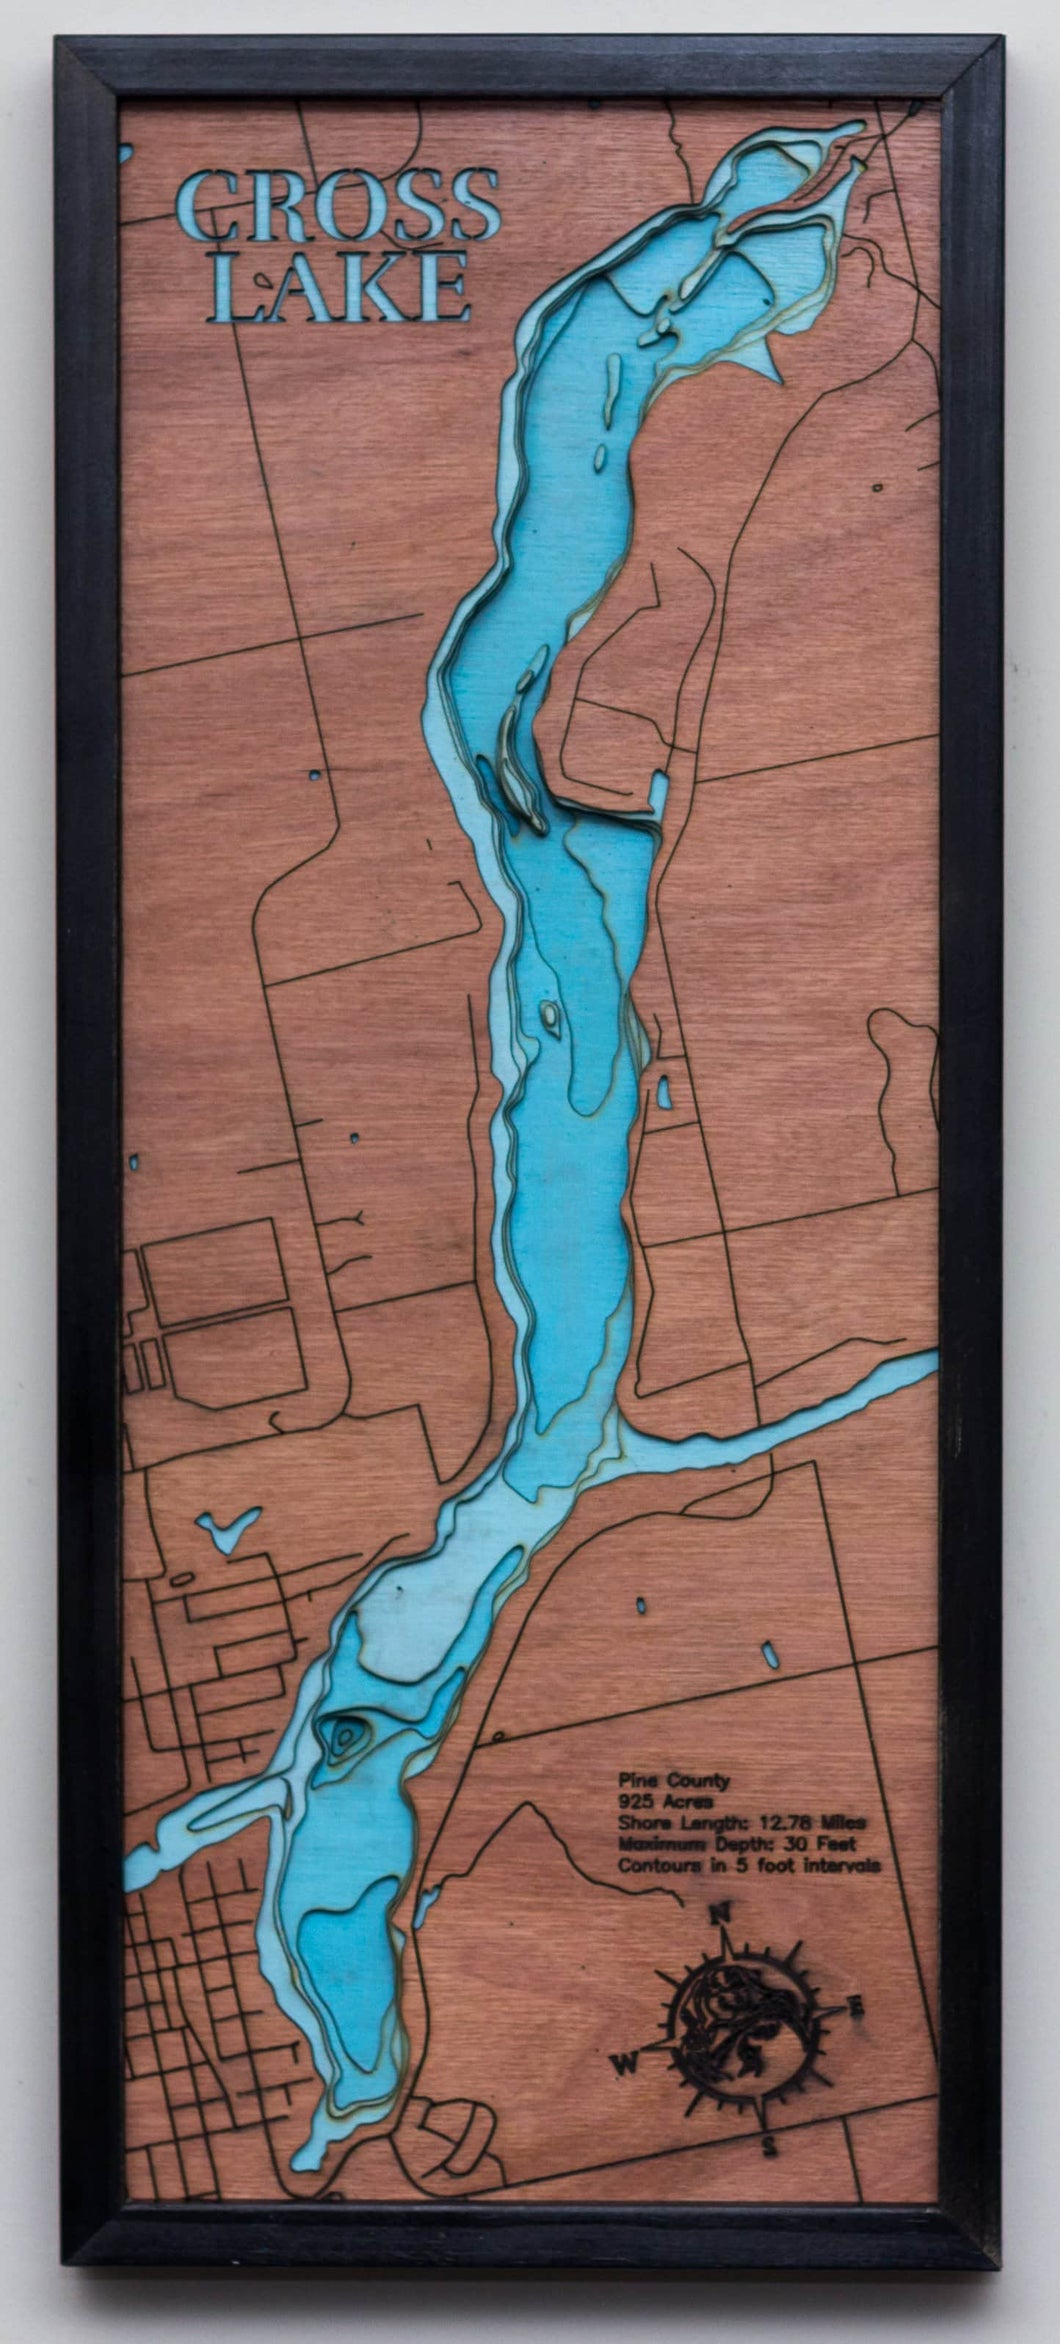 3d Lake Map of Cross Lake in Pine County, MN